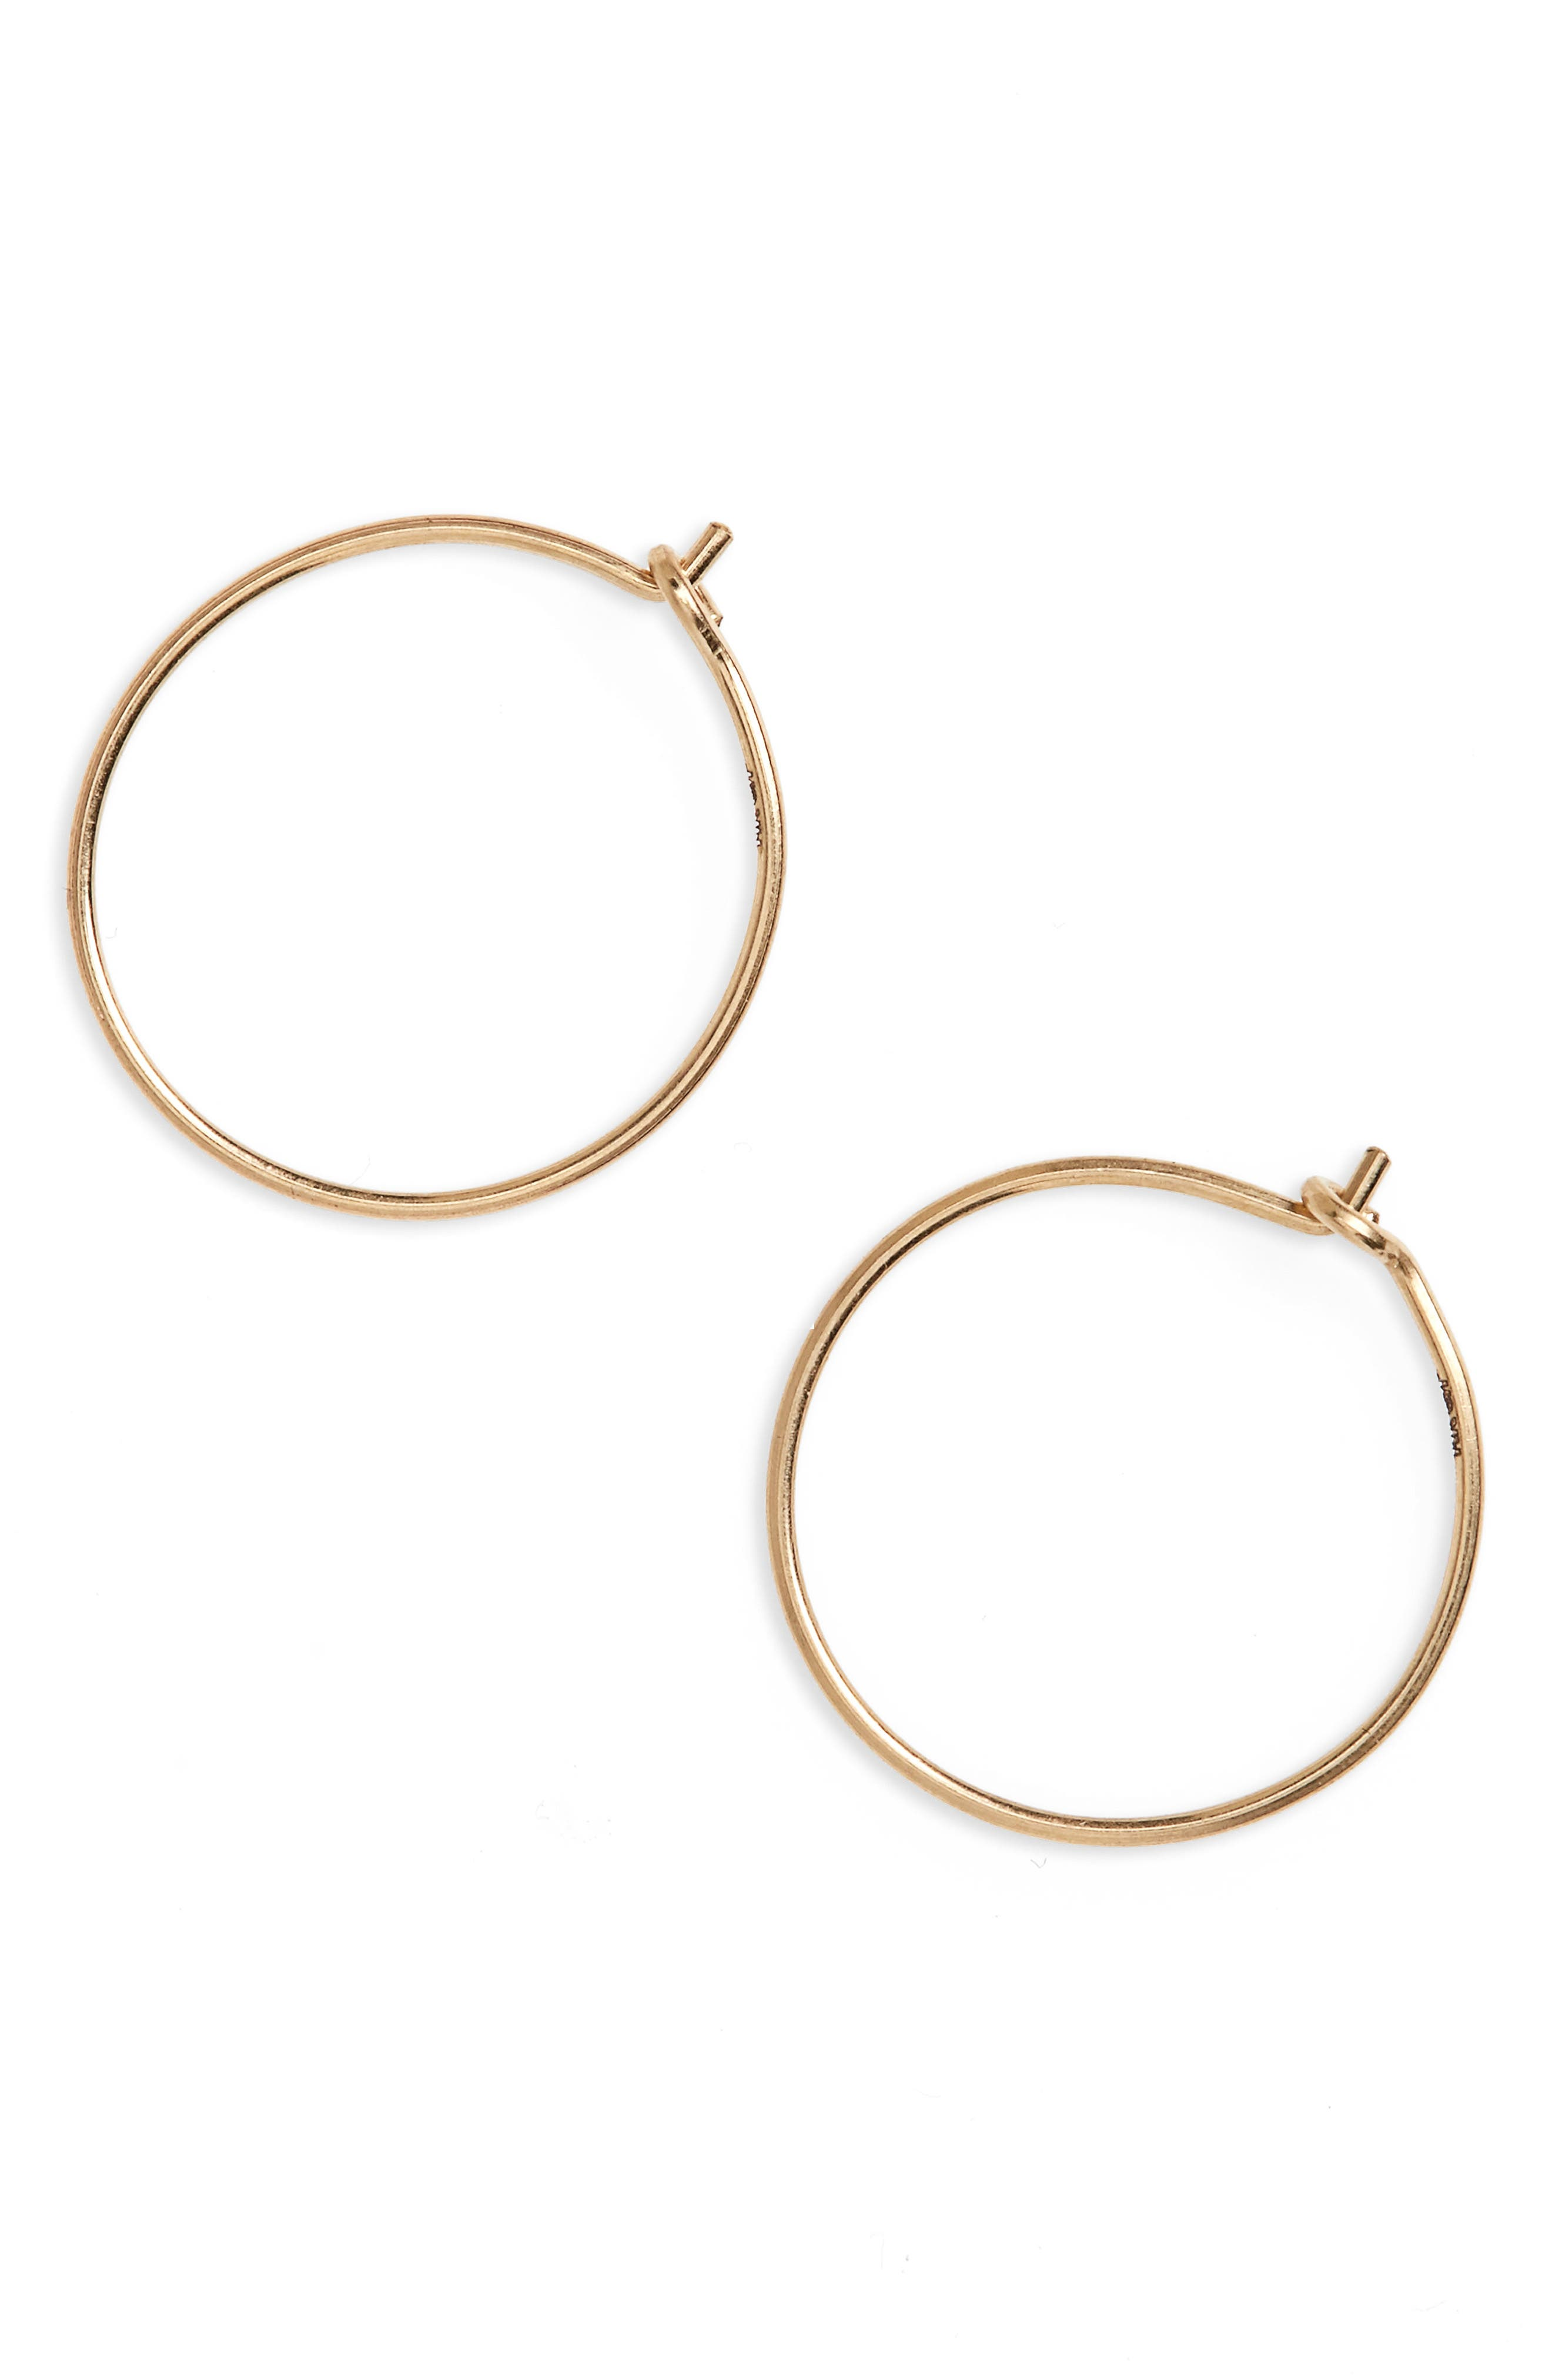 Delicate Wire Hoop Earrings,                             Main thumbnail 1, color,                             Gold